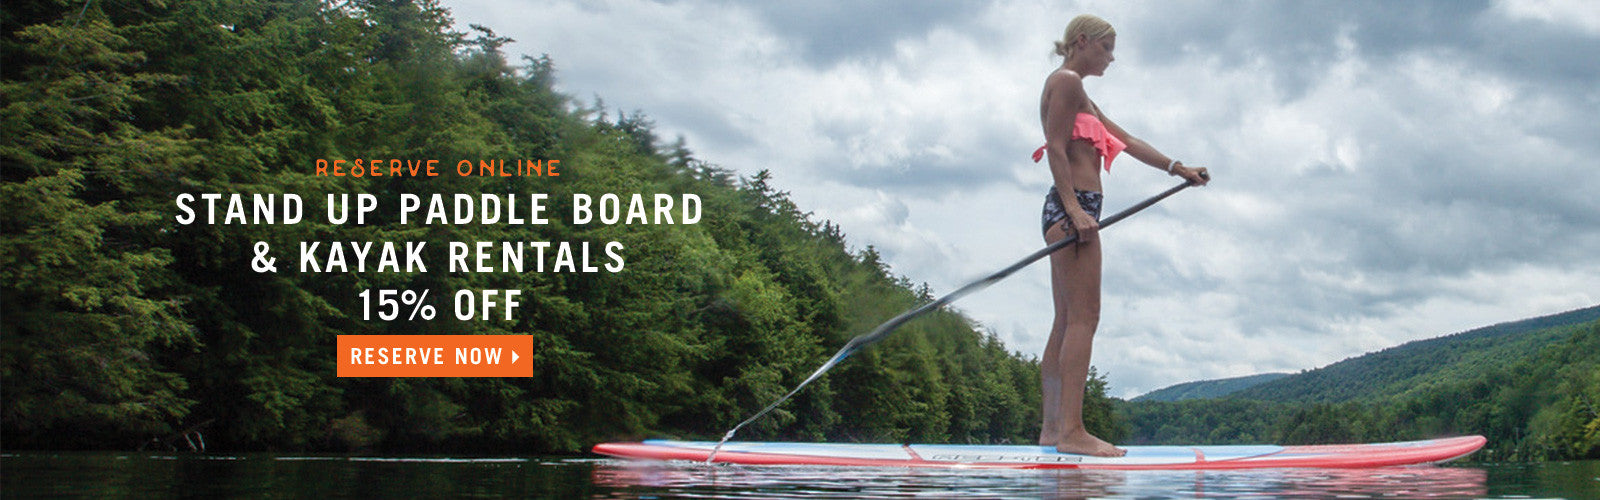 Stand Up Paddle Board & Kayak Rentals